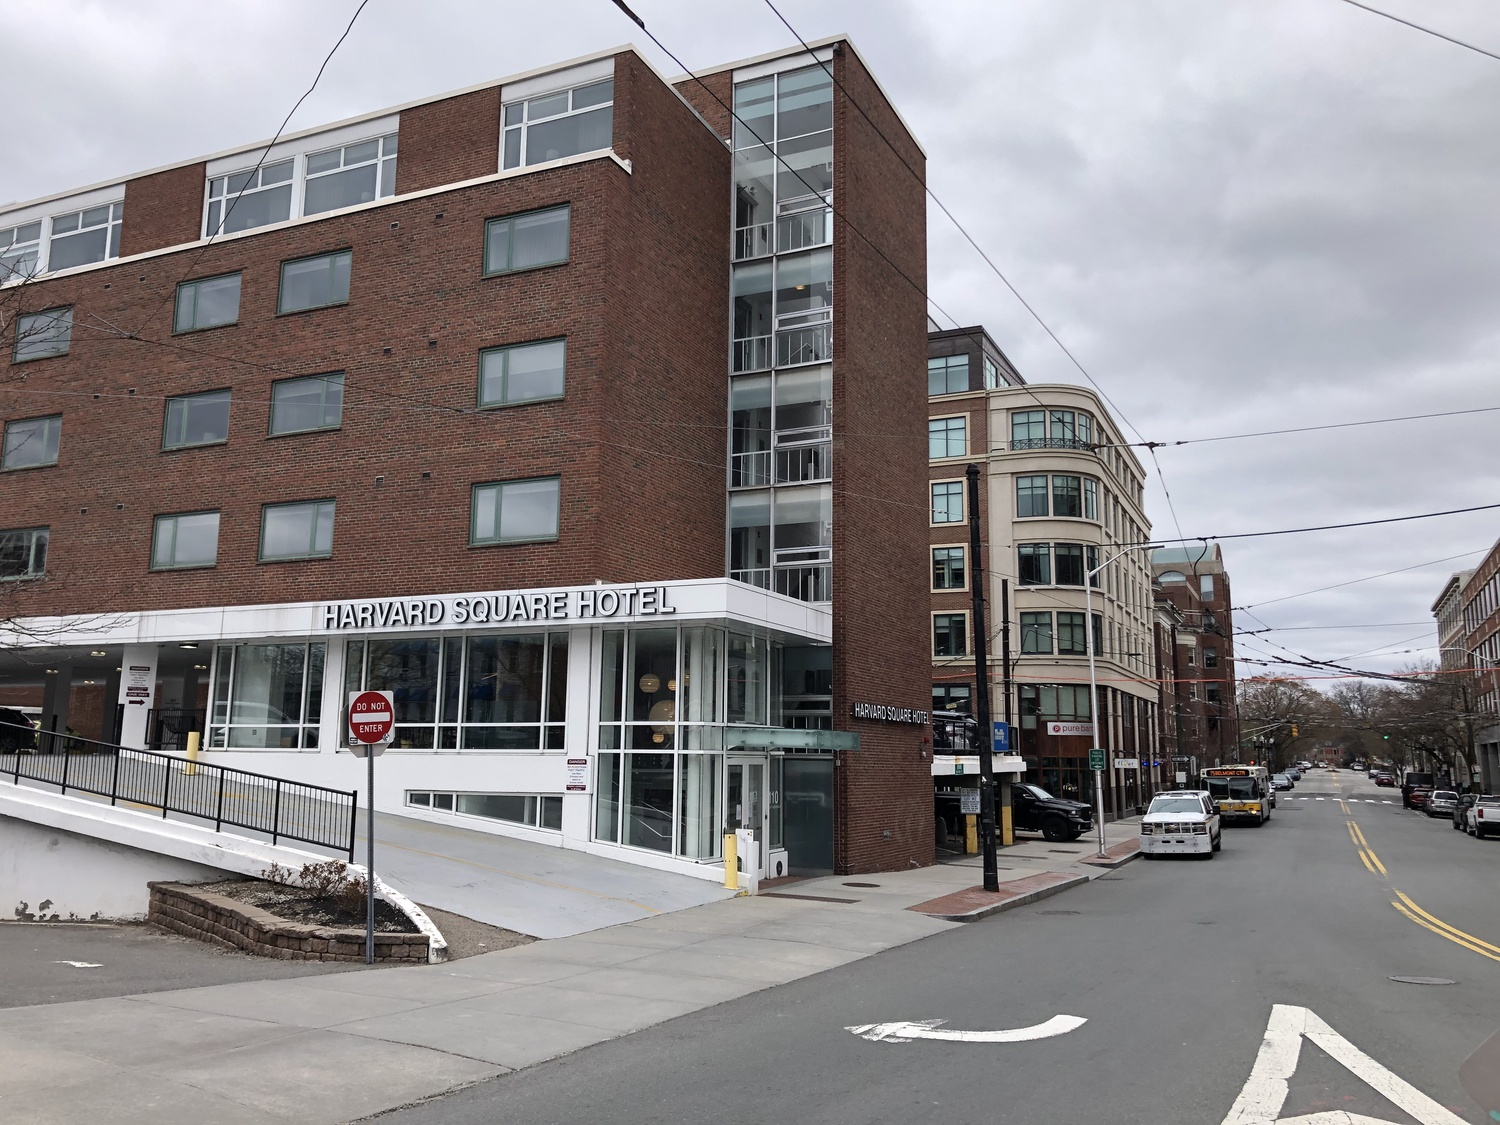 The University-owned Harvard Square Hotel has opened its doors to medical workers and first responders as a place to stay near local healthcare facilities as they help fight the coronavirus.